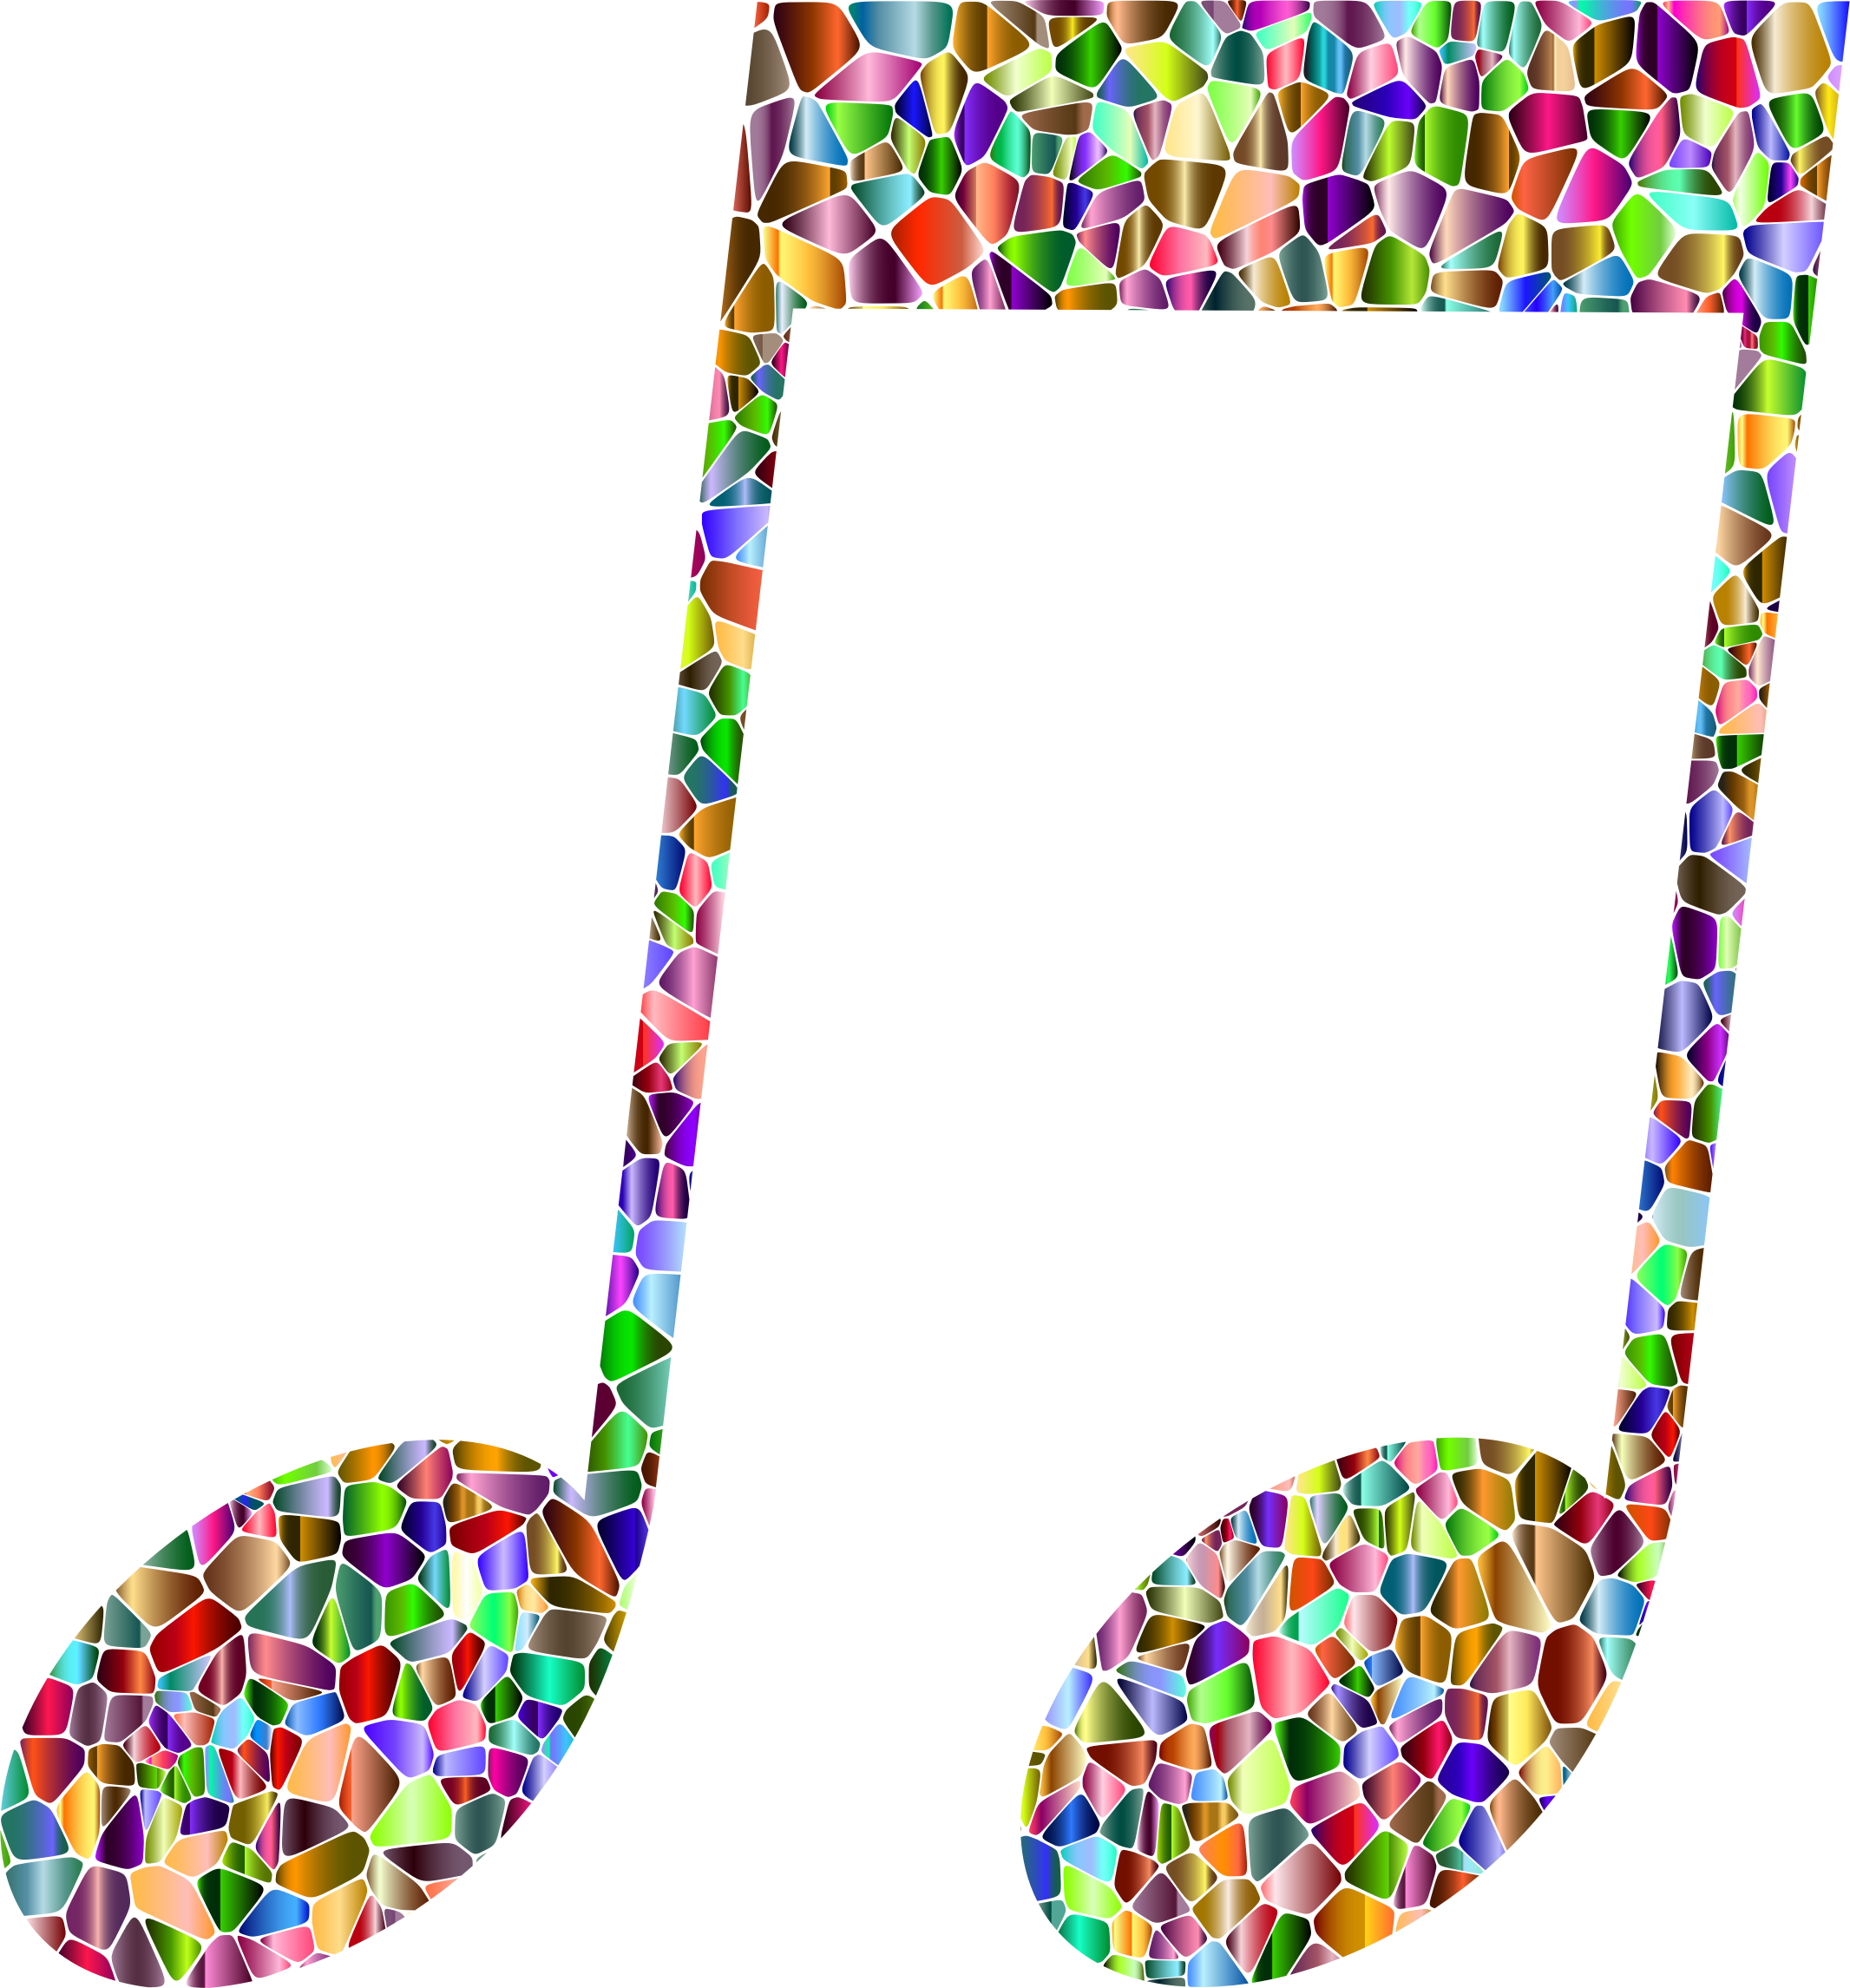 Vivid Chromatic Tiled Musical Note 14 by GDJ